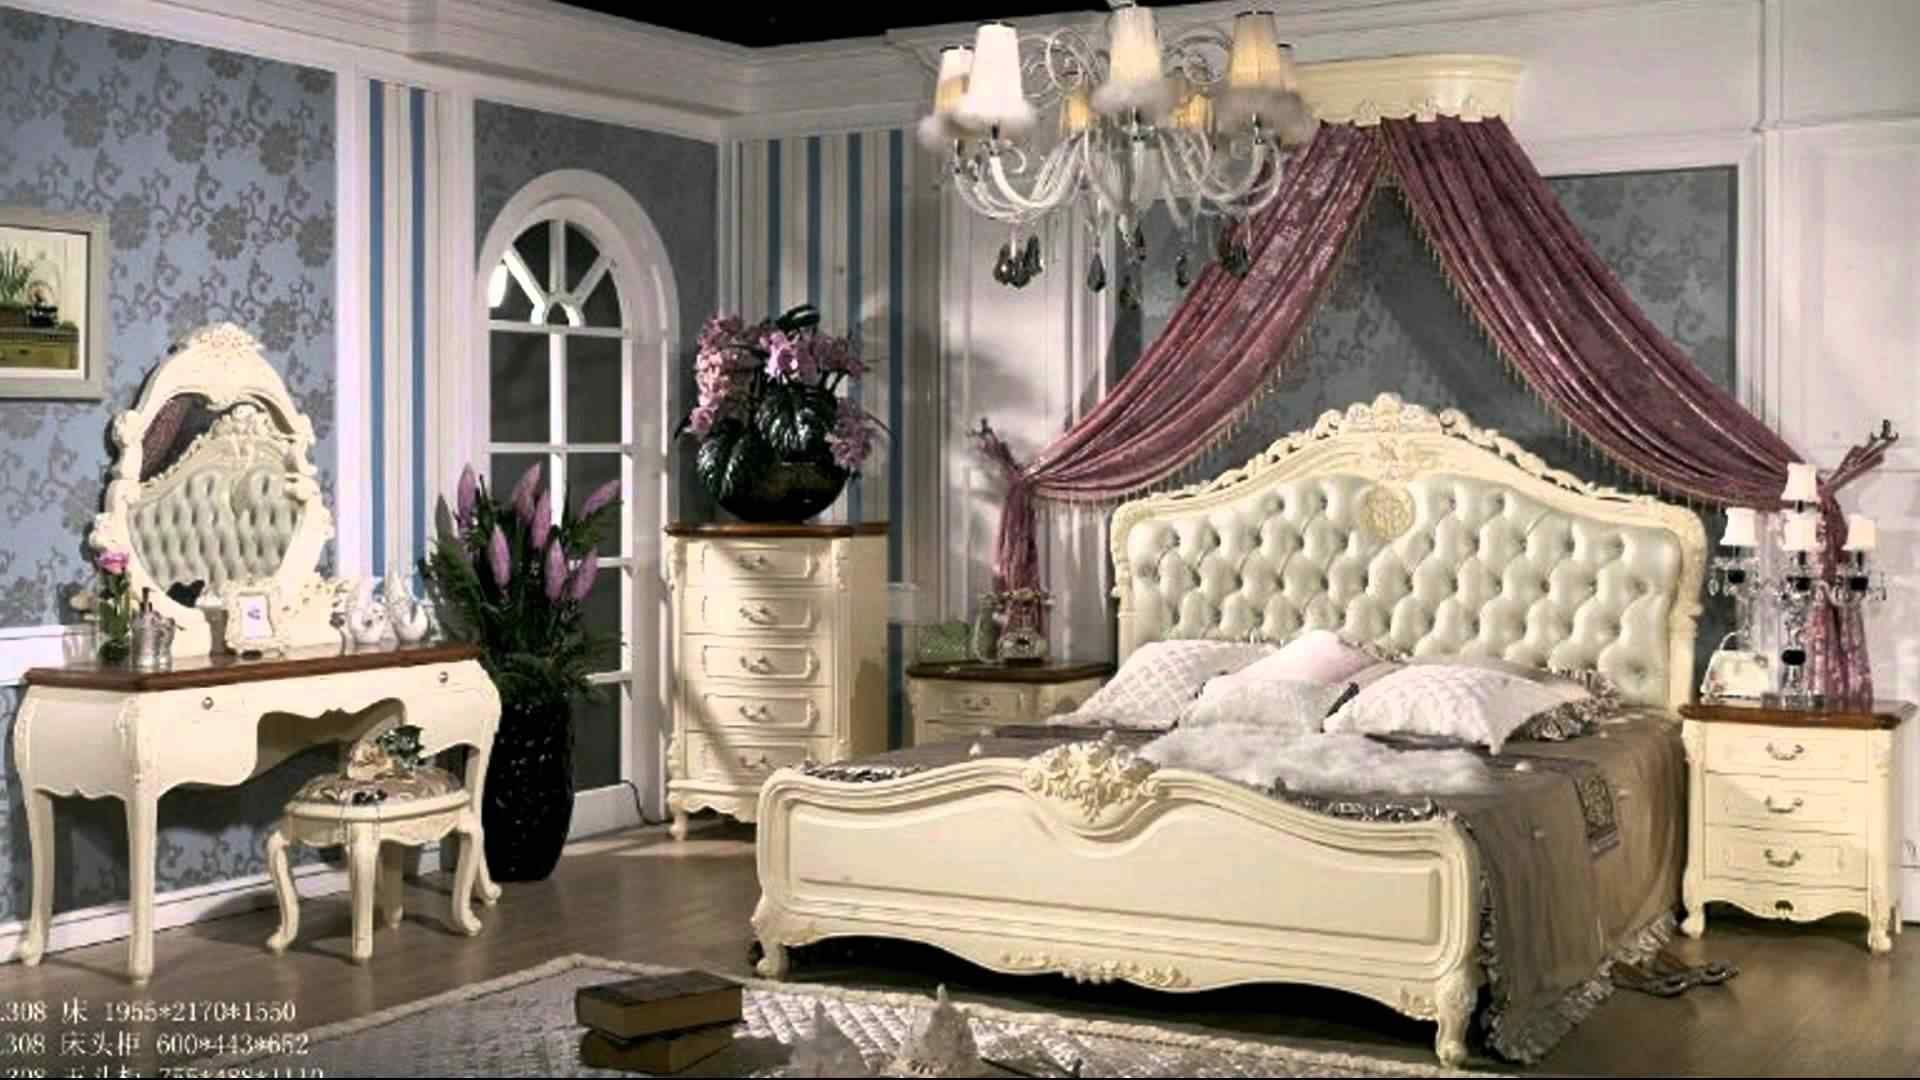 Awesome french style bedroom decor ideas 32 - ROUNDECOR